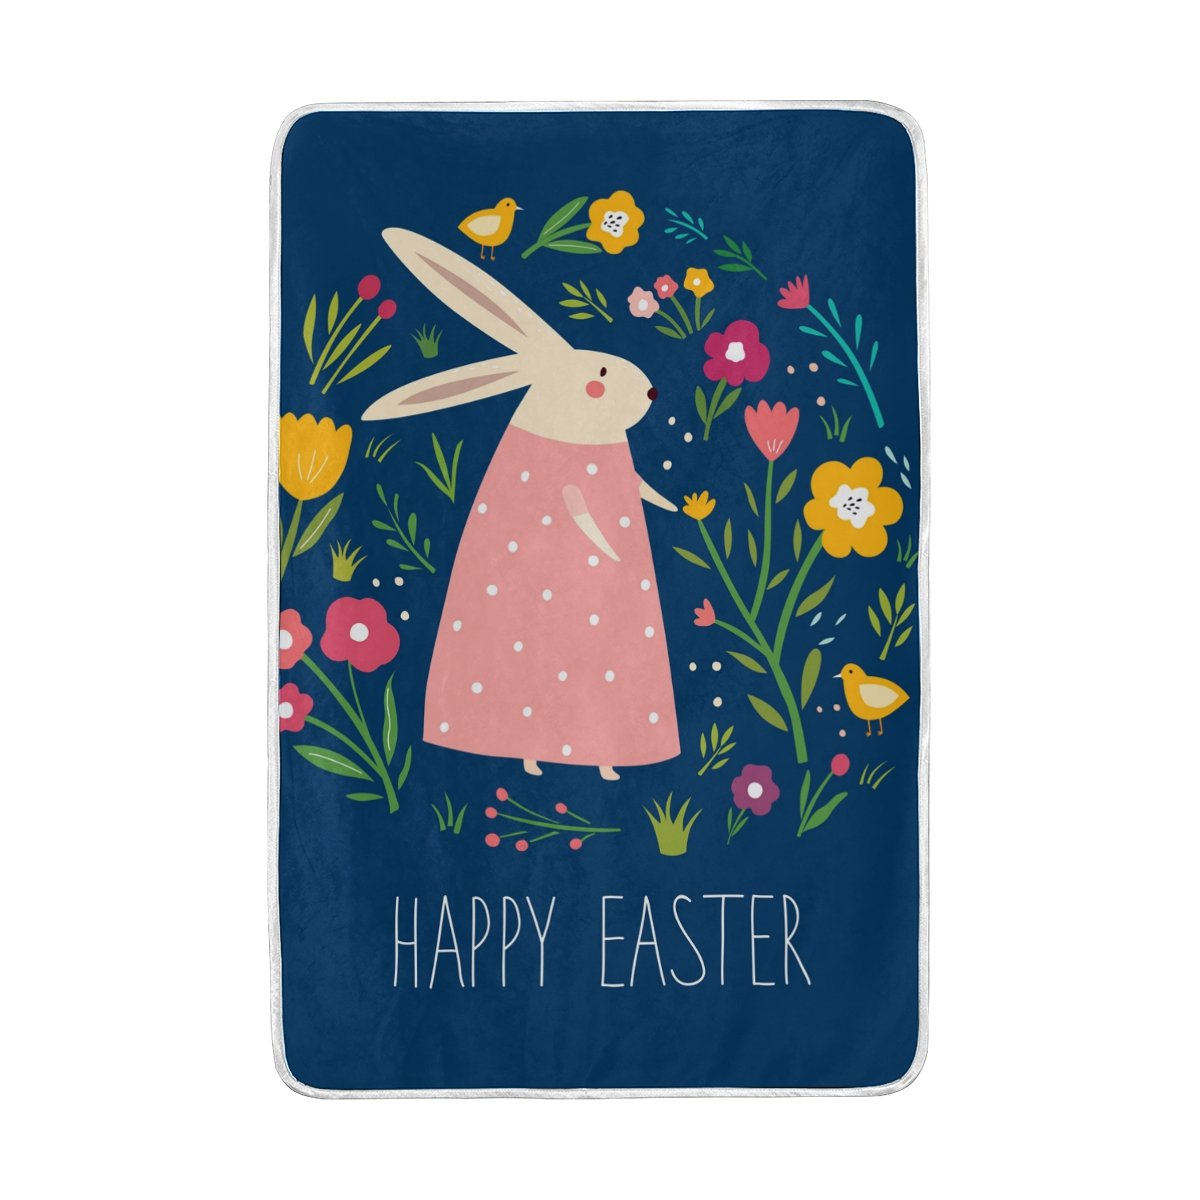 My Little Nest Happy Easter Cartoon Rabbit Cozy Throw Blanket Lightweight MicrofiberSoft Warm Blankets Everyday Use for Bed Couch Sofa 60'' x 90''